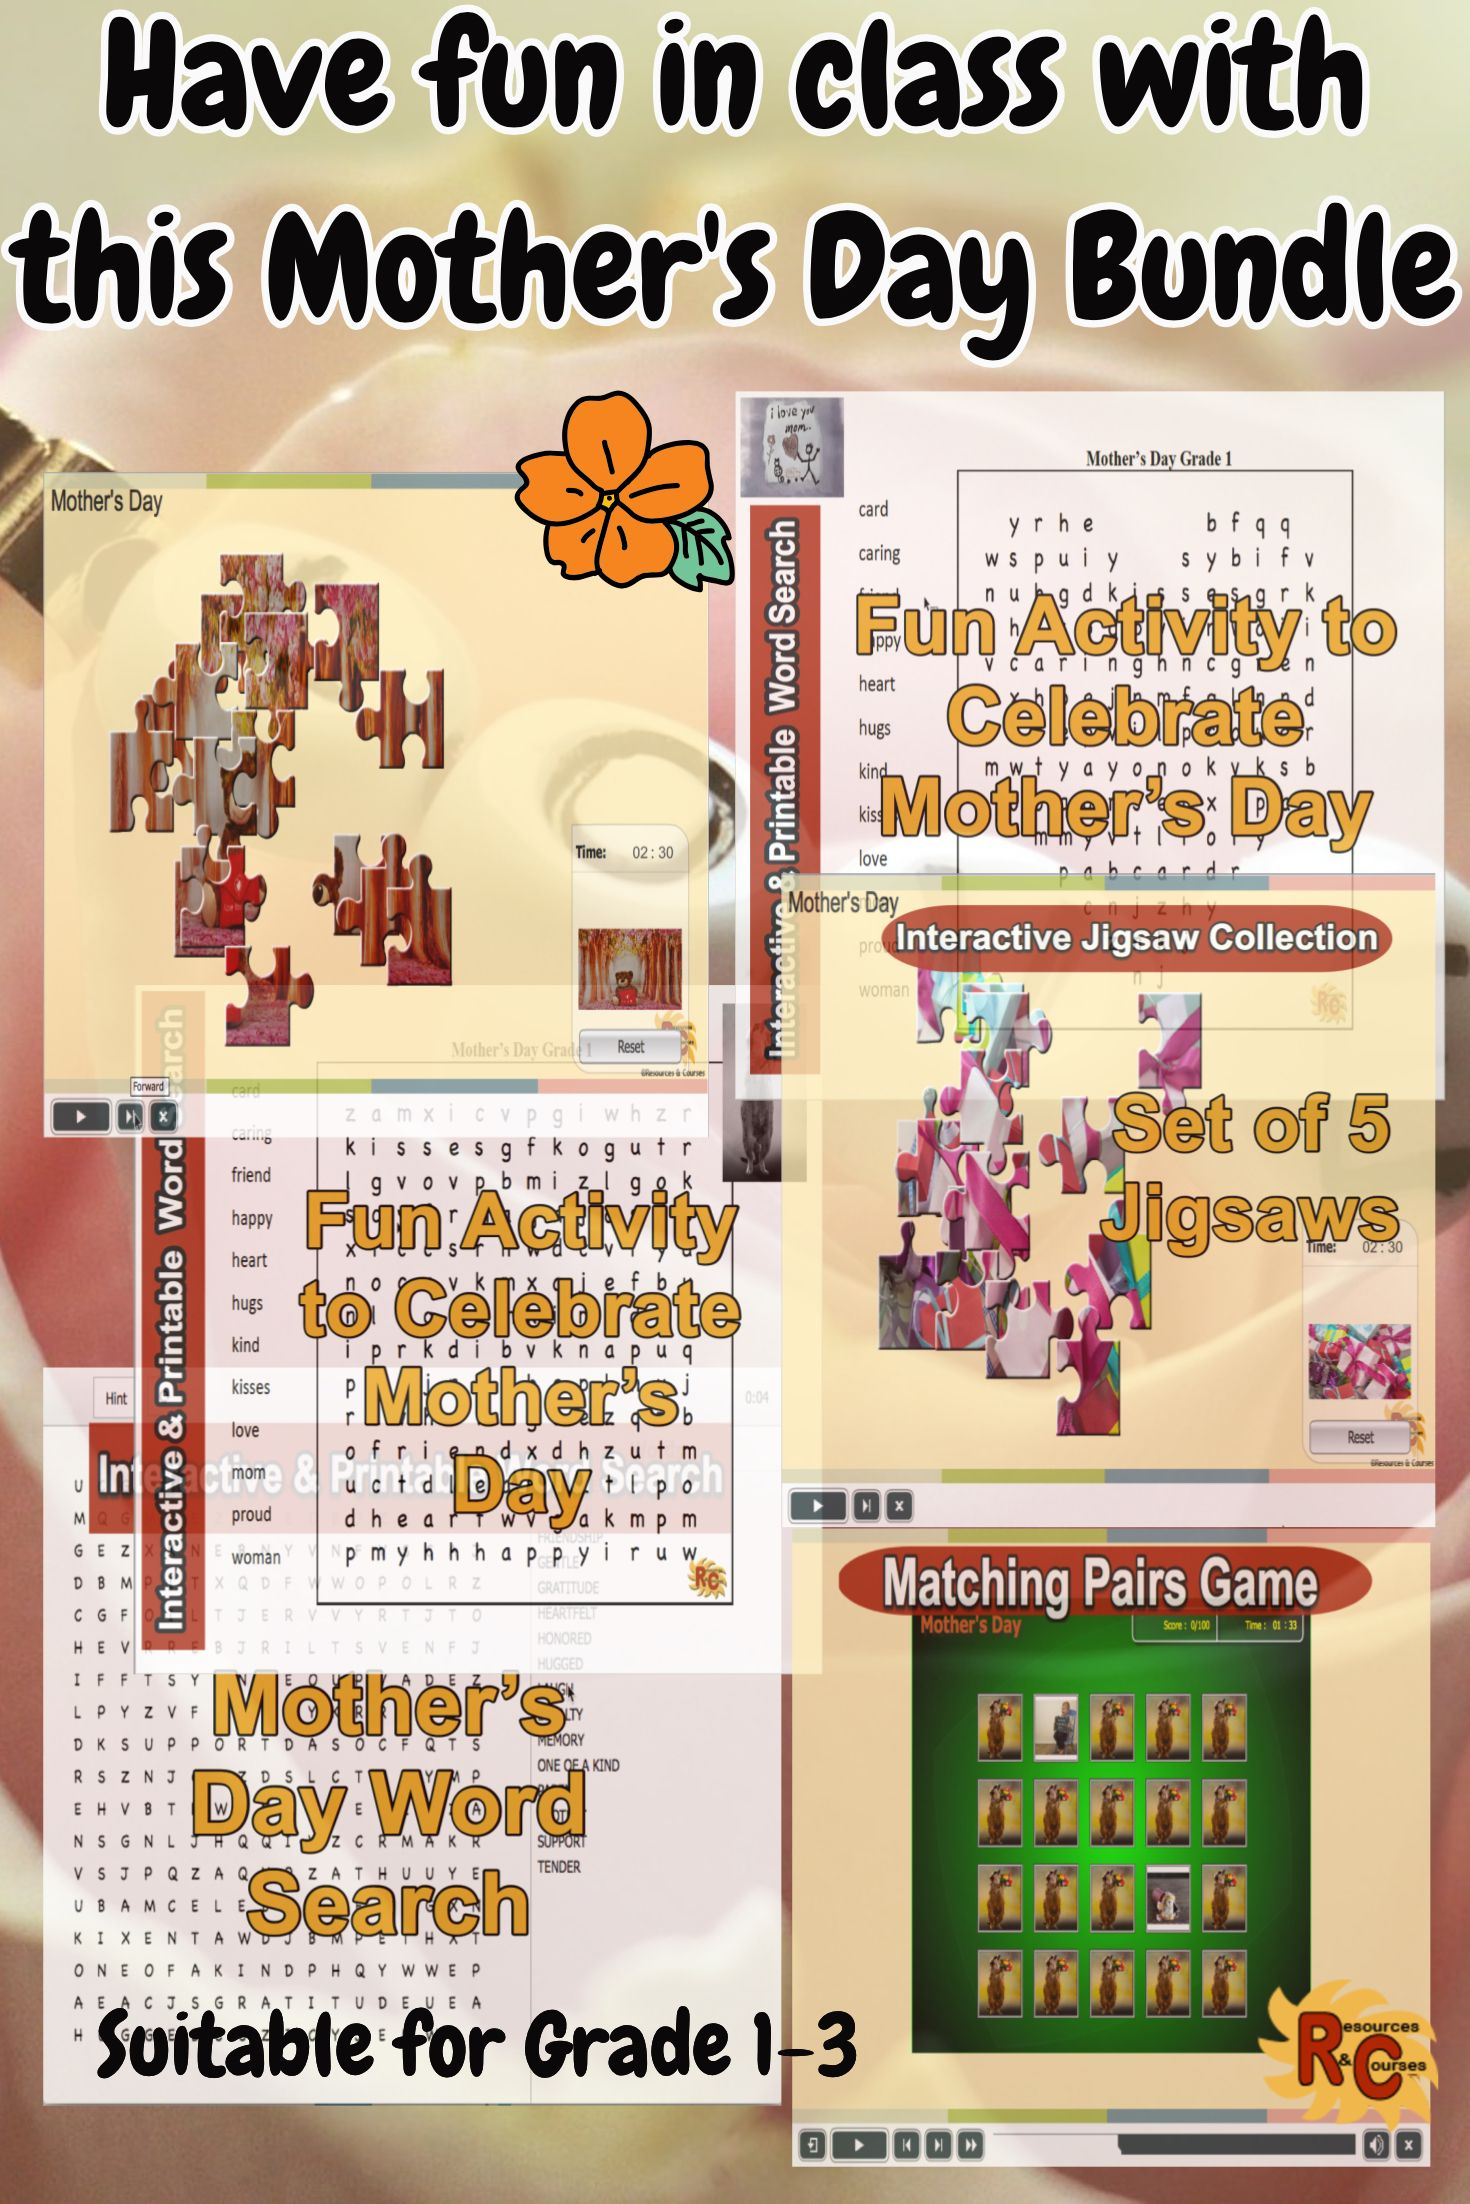 Mother's Day Games & Puzzles Bundle for Kids G1-3 | great tpt